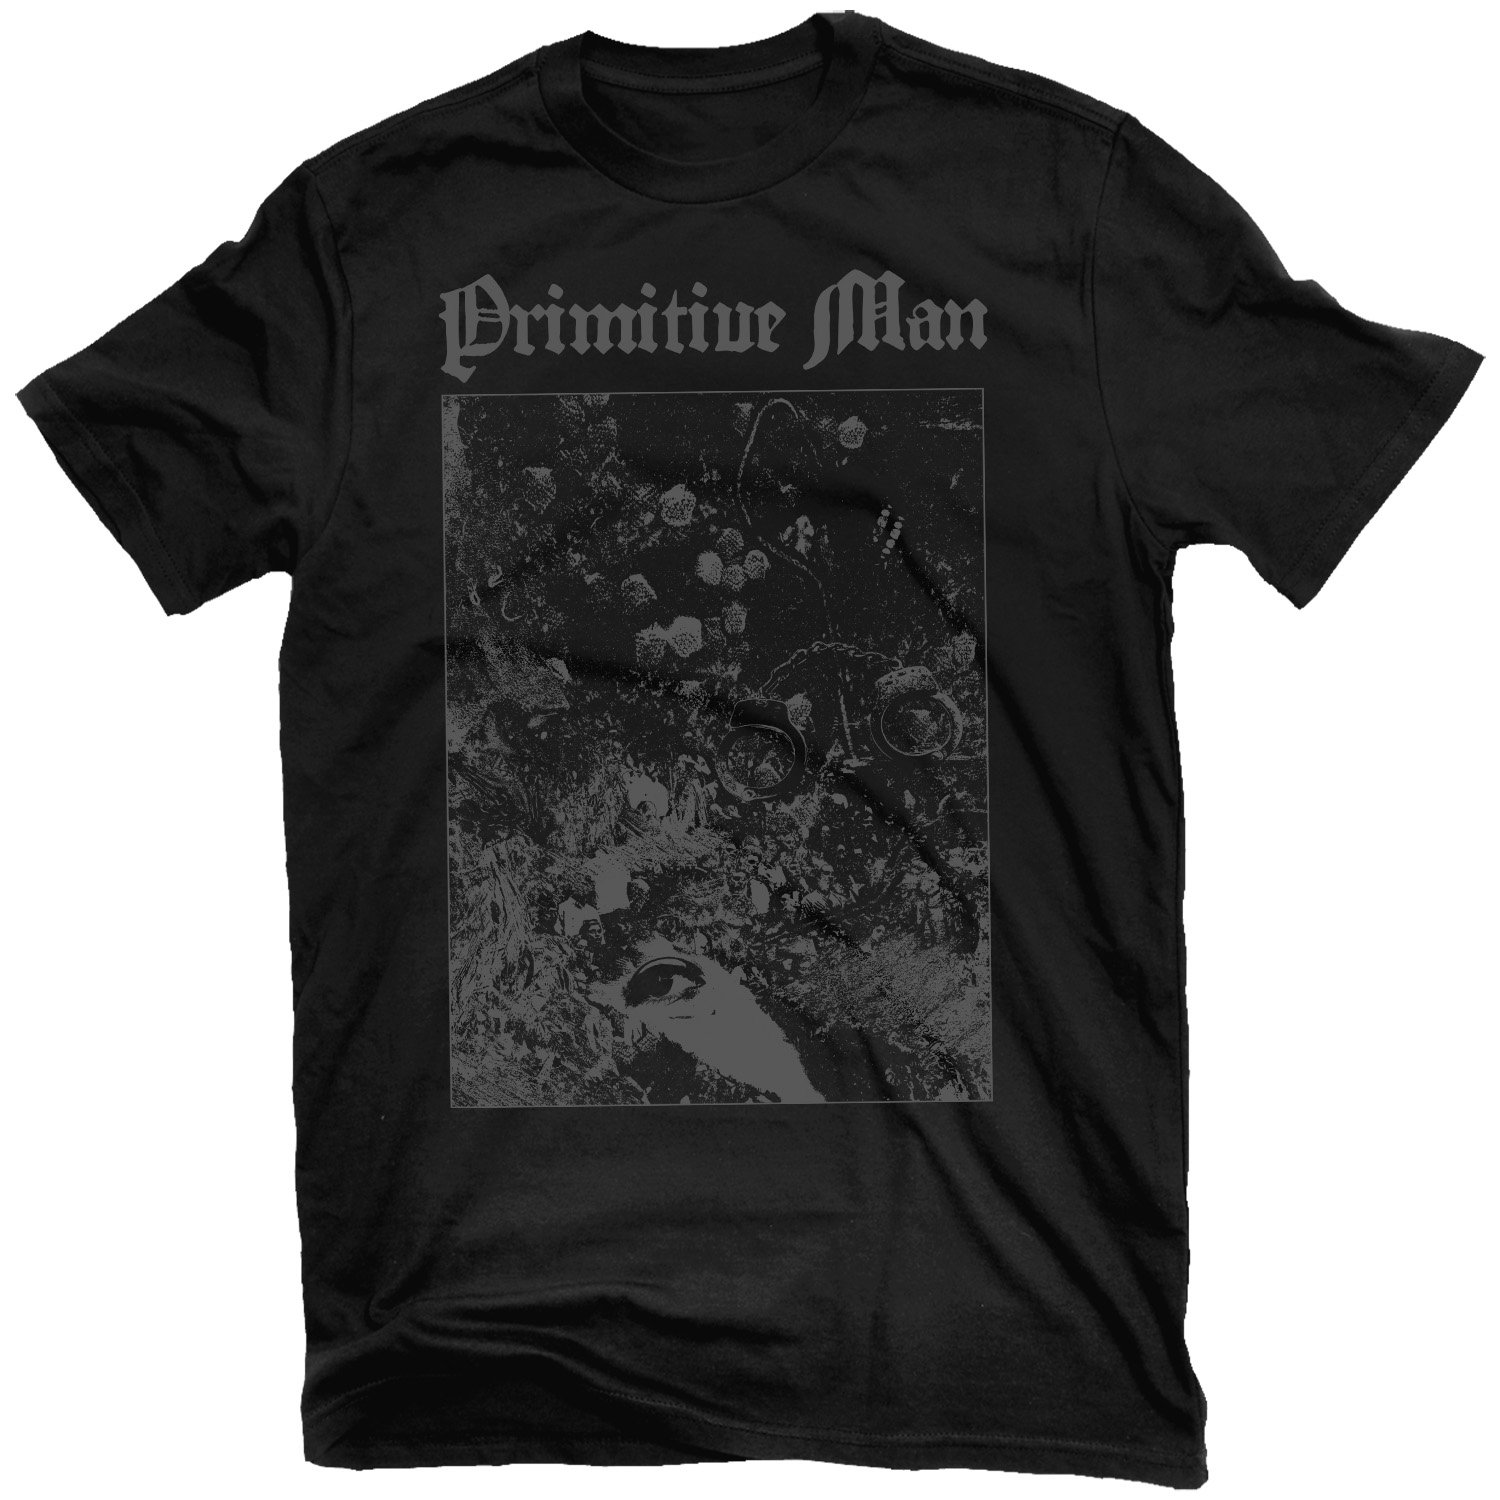 Primitive Man - Love Under Will T Shirt + Split with Unearthly Trance LP Bundle